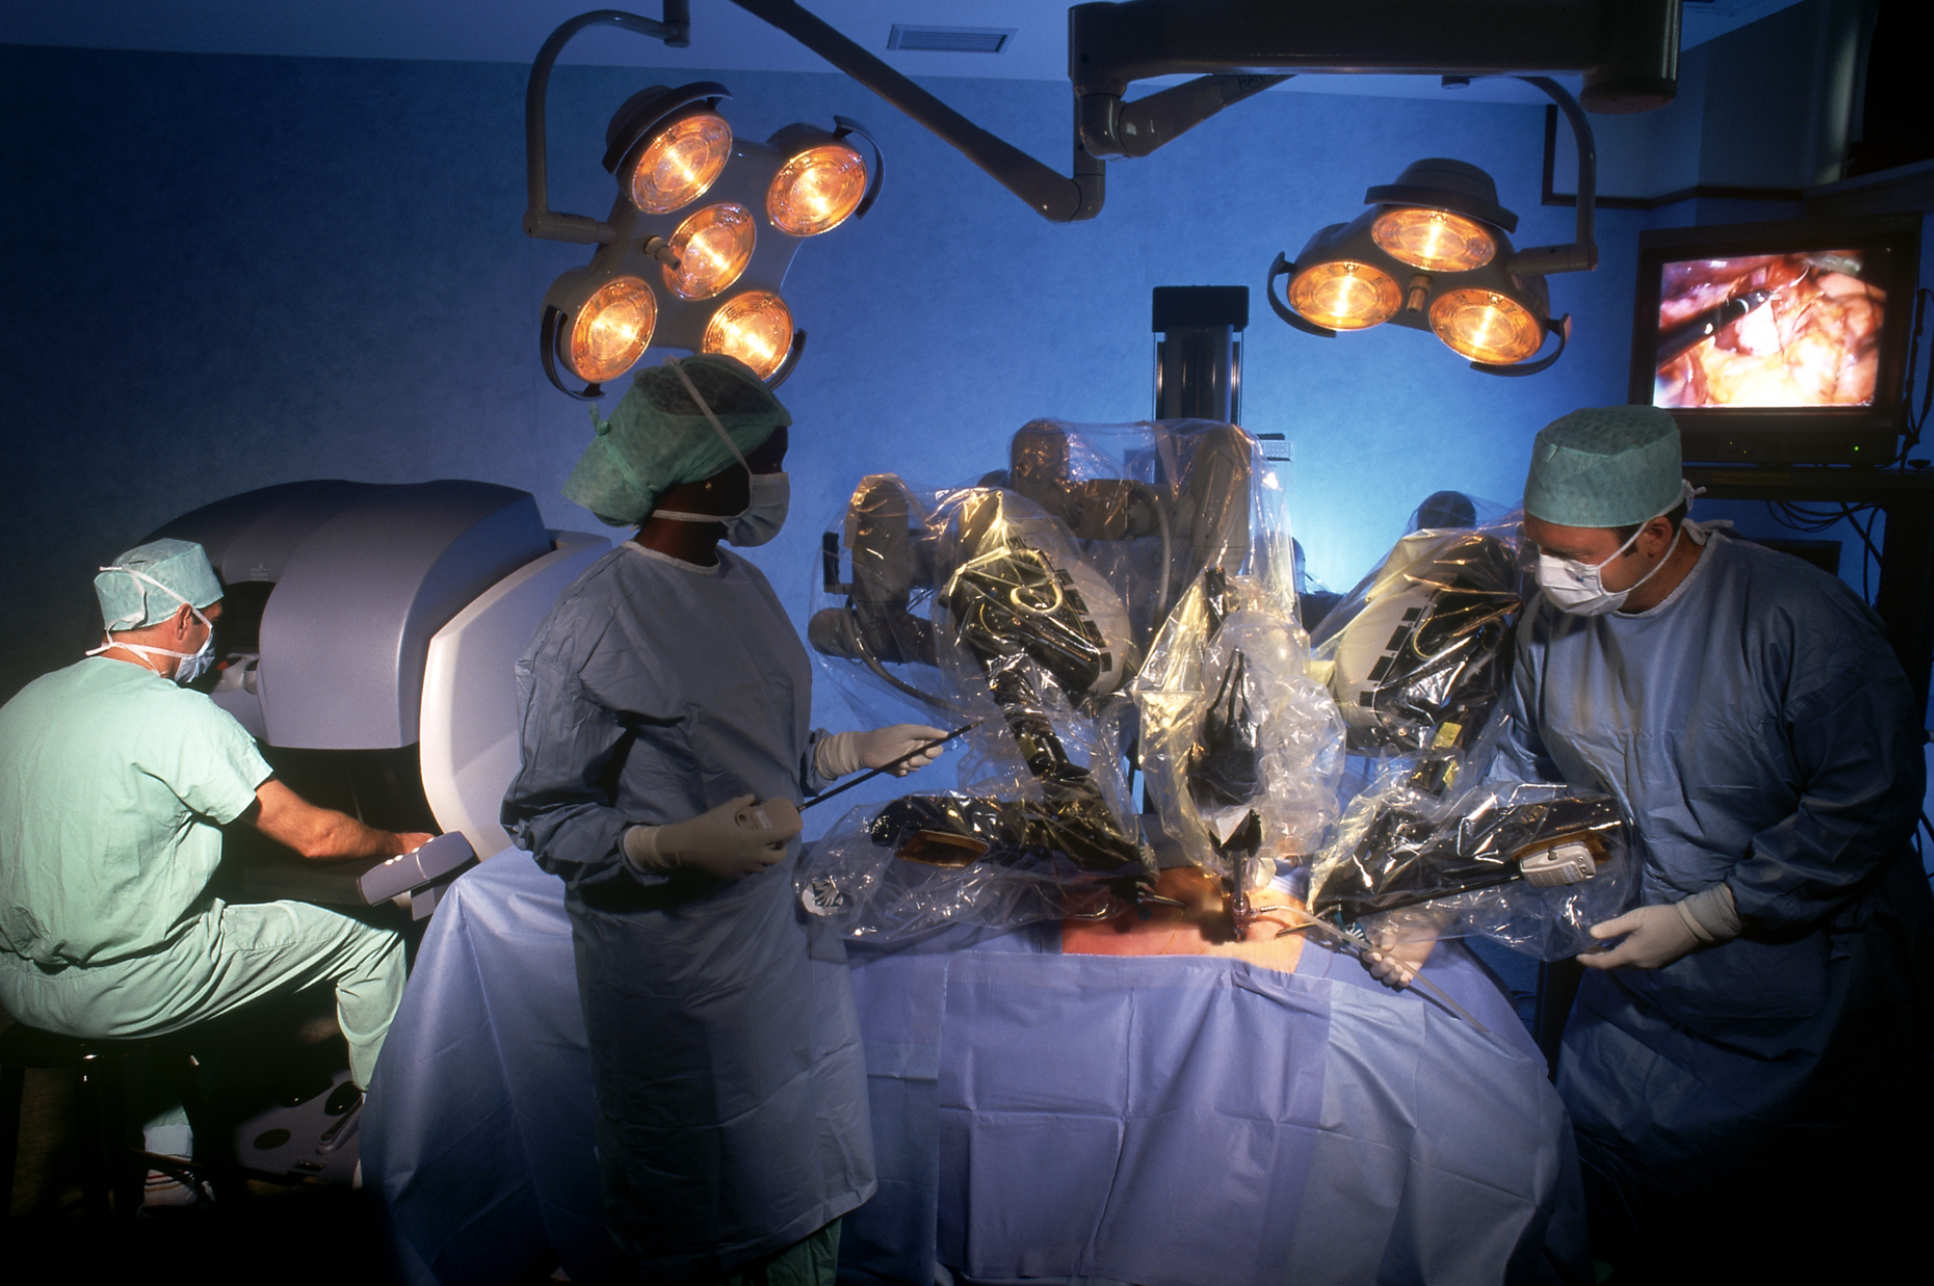 Robot arms over a patient in surgery